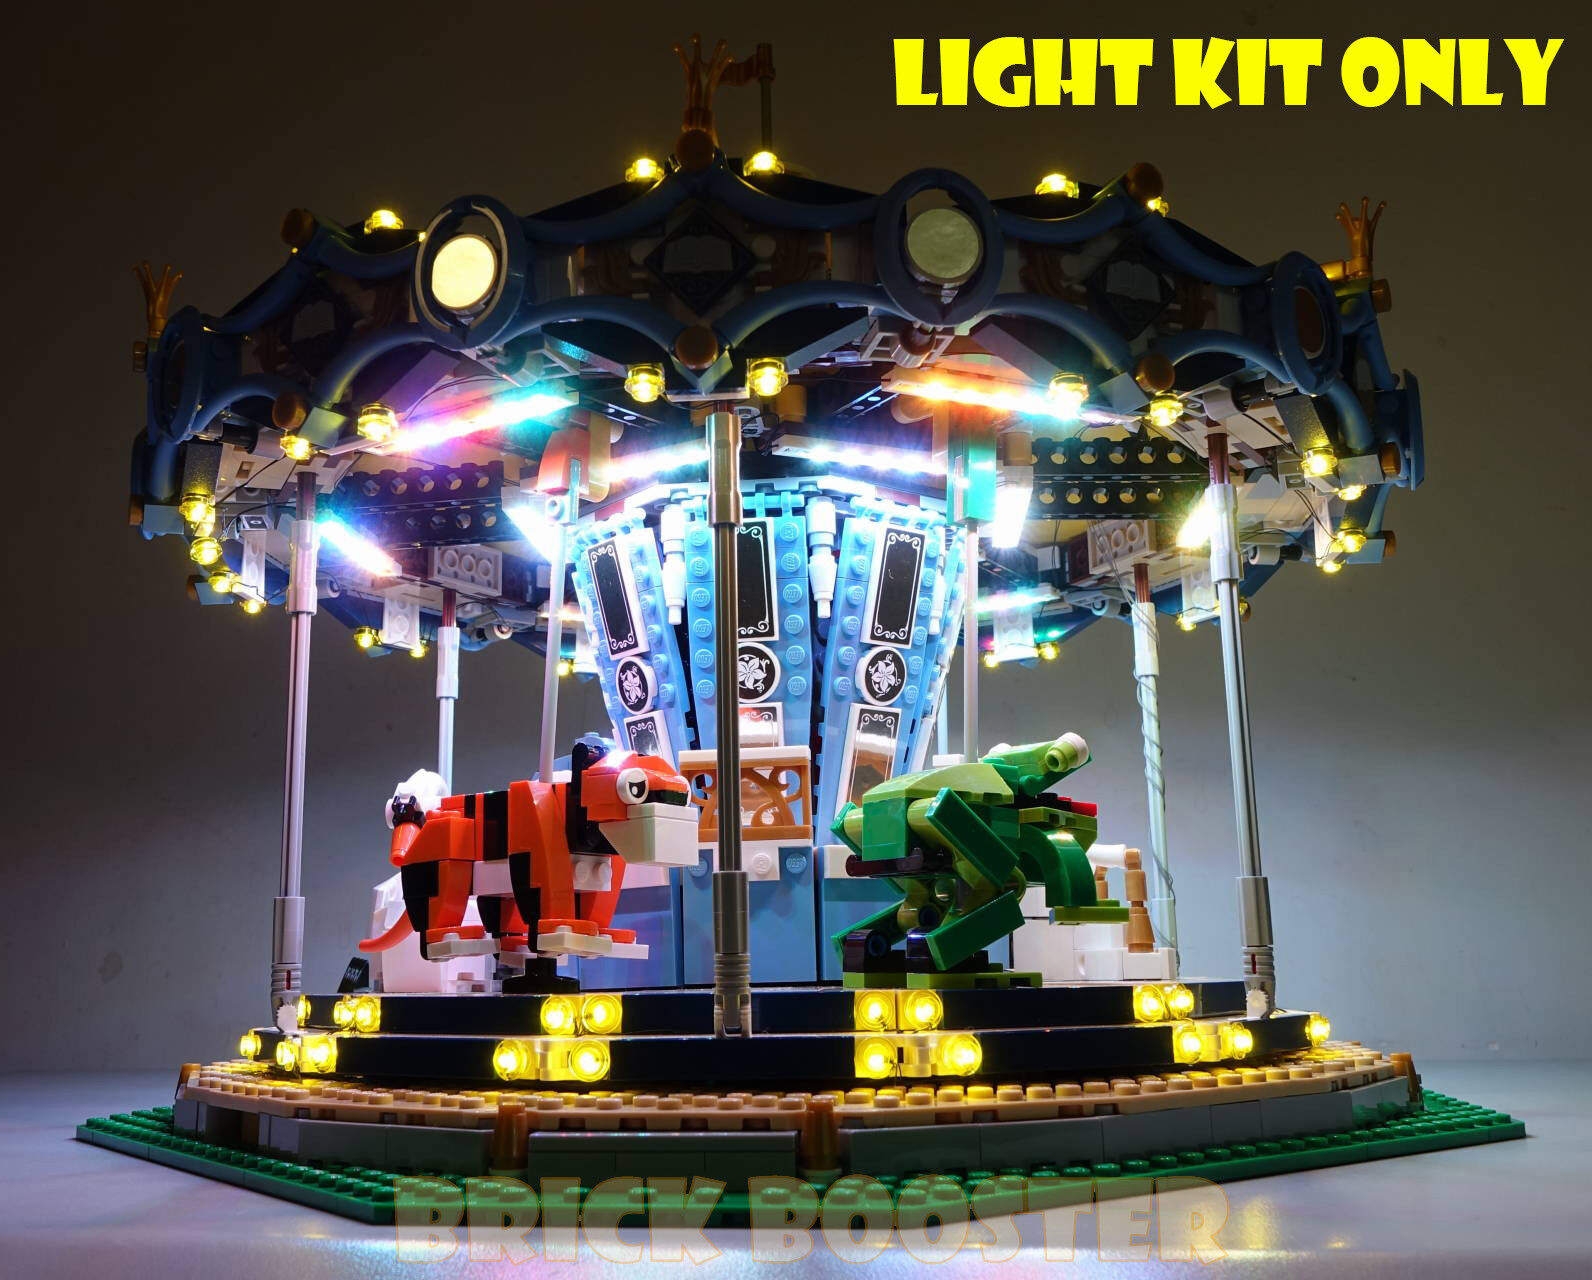 Battery Powered LED Light Kit for Lego 10257 10257 10257 Carousel f960dc